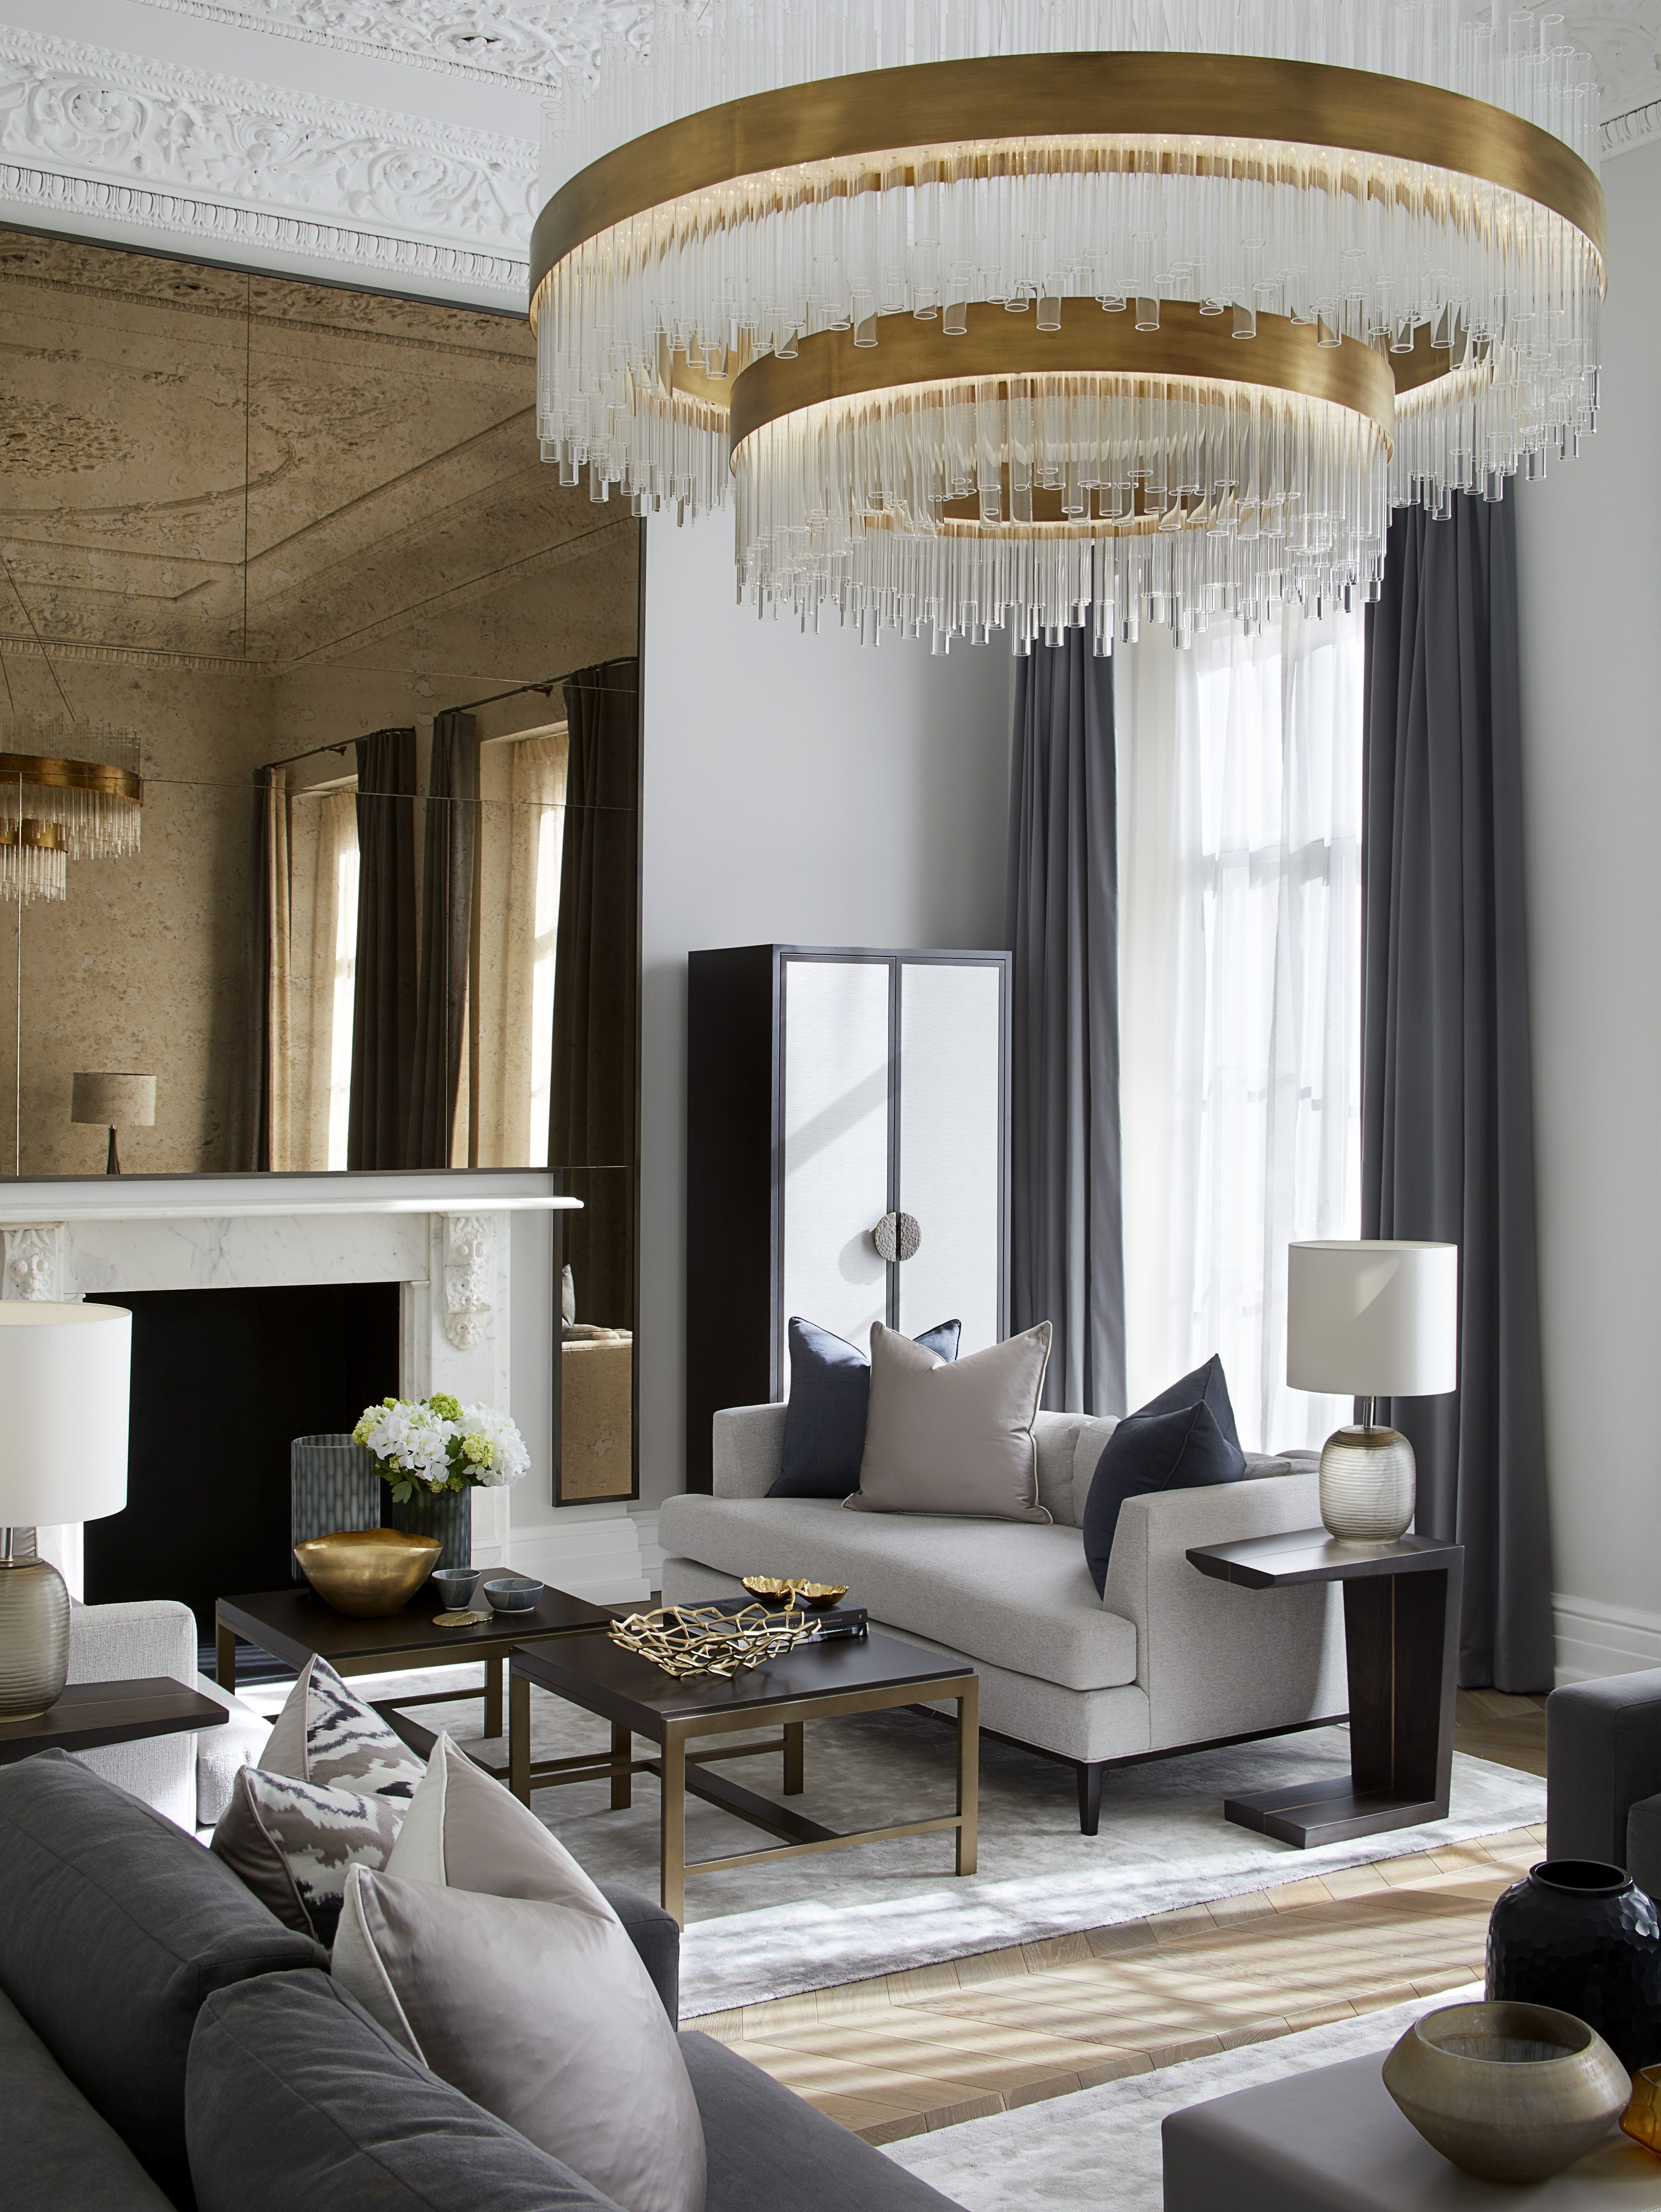 Lighting Design Living Room: Find Out The Best Luxury Lighting Fixtures For Your Next